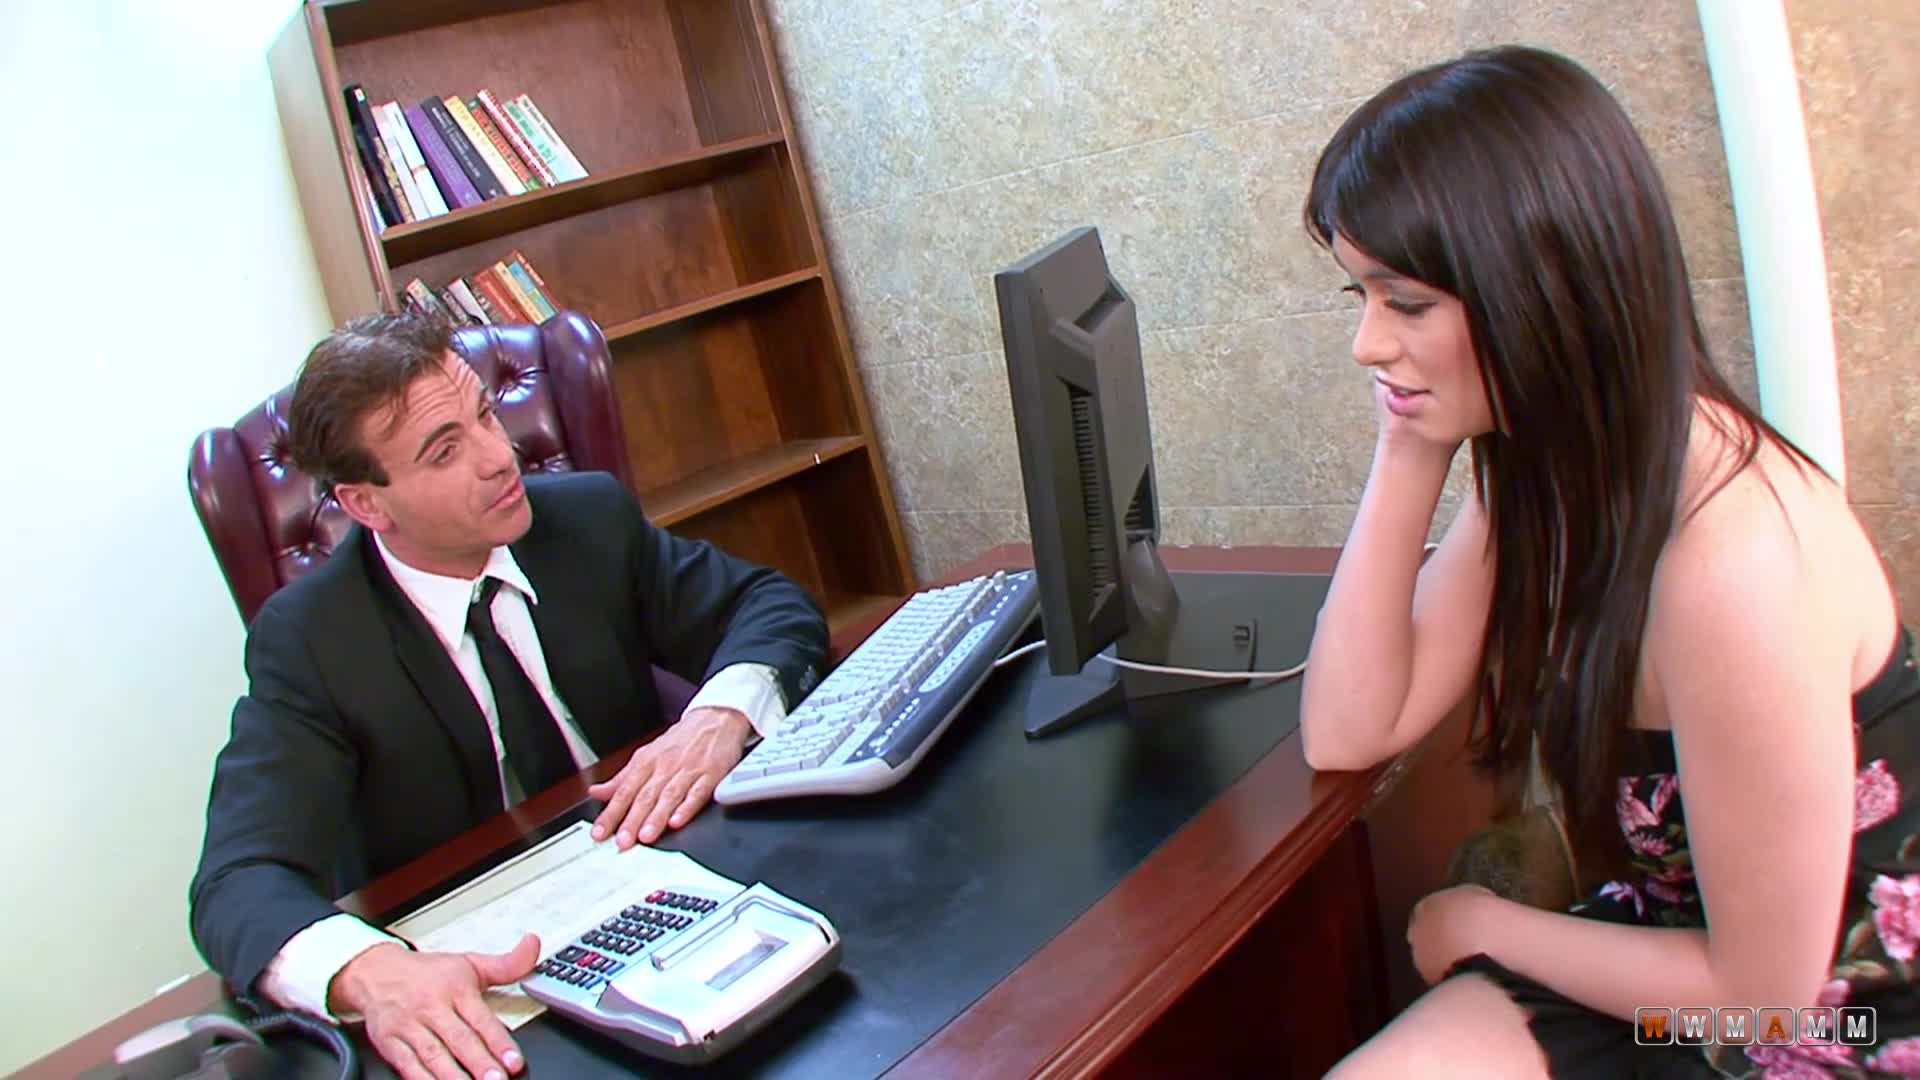 Angry Boss Forcing His Sexy Worker To Fuck Her For Stealing Money